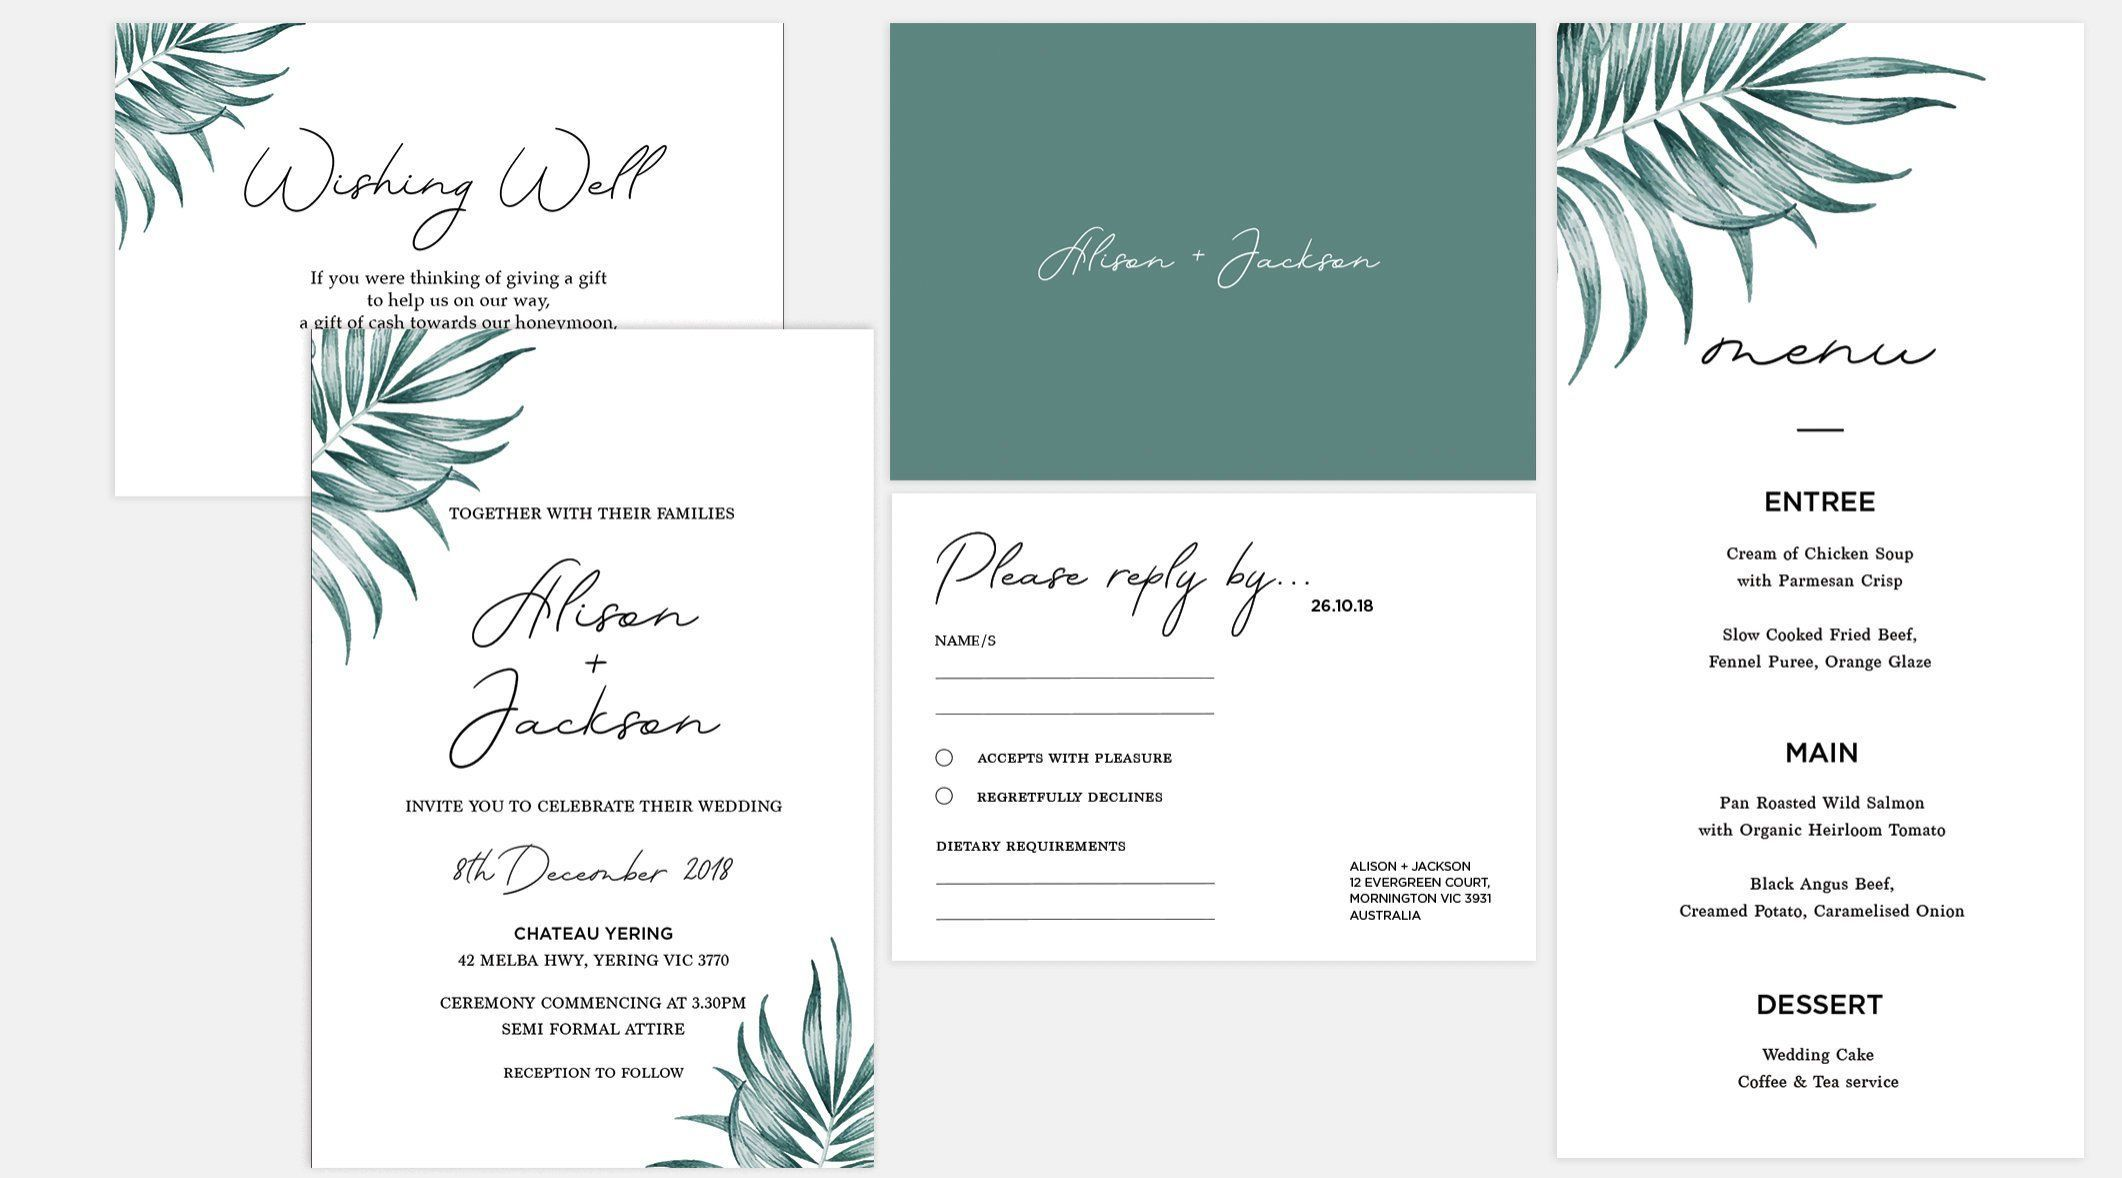 000 Archaicawful Formal Wedding Invitation Template Sample  Templates Email Format Wording FreeFull